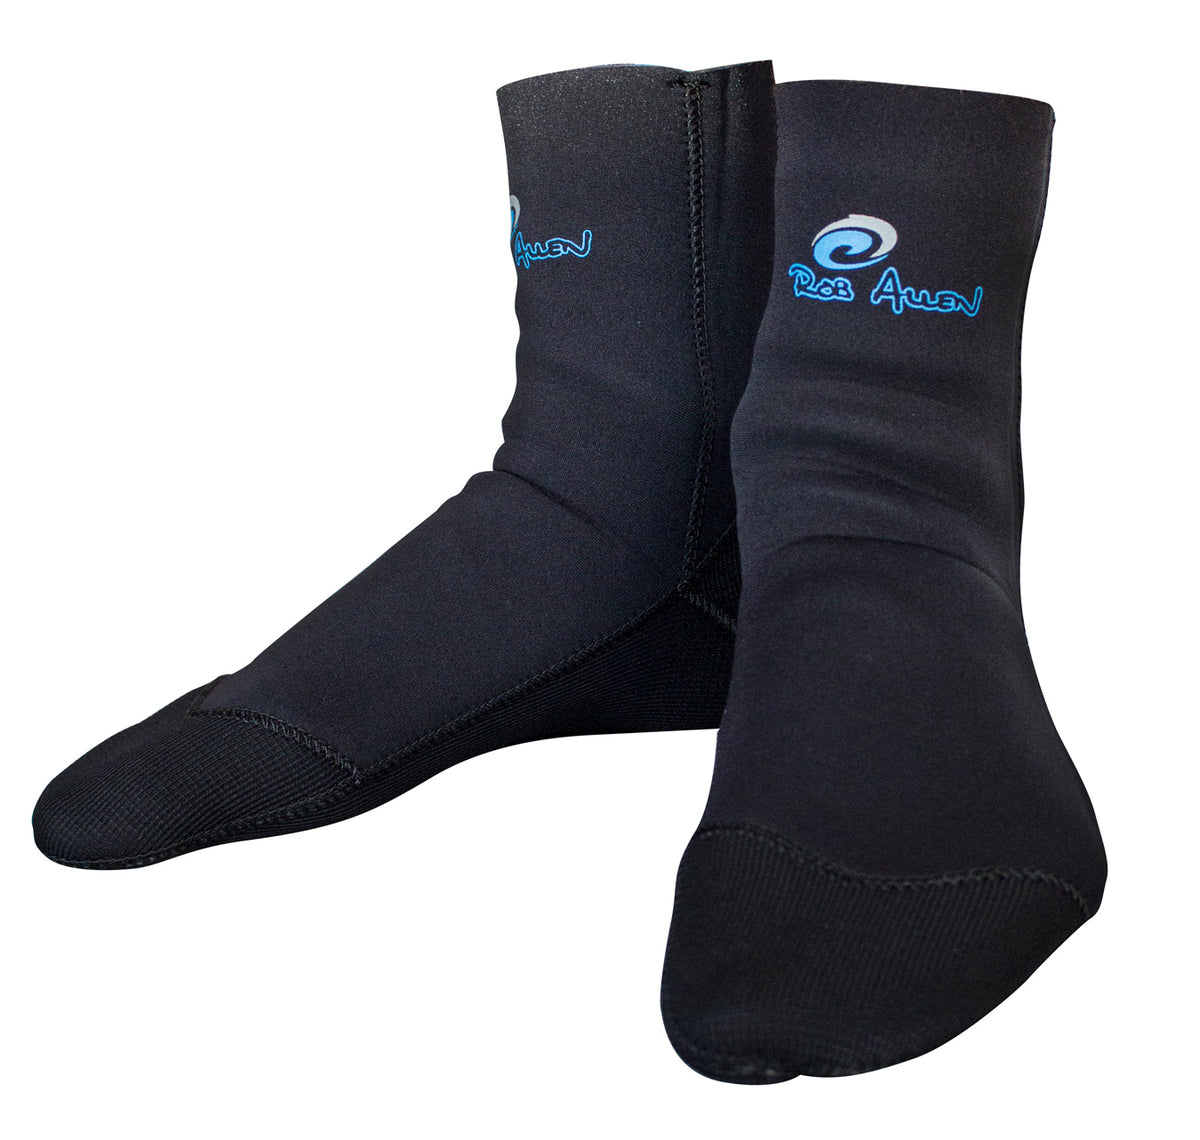 Rob Allen 3mm Socks